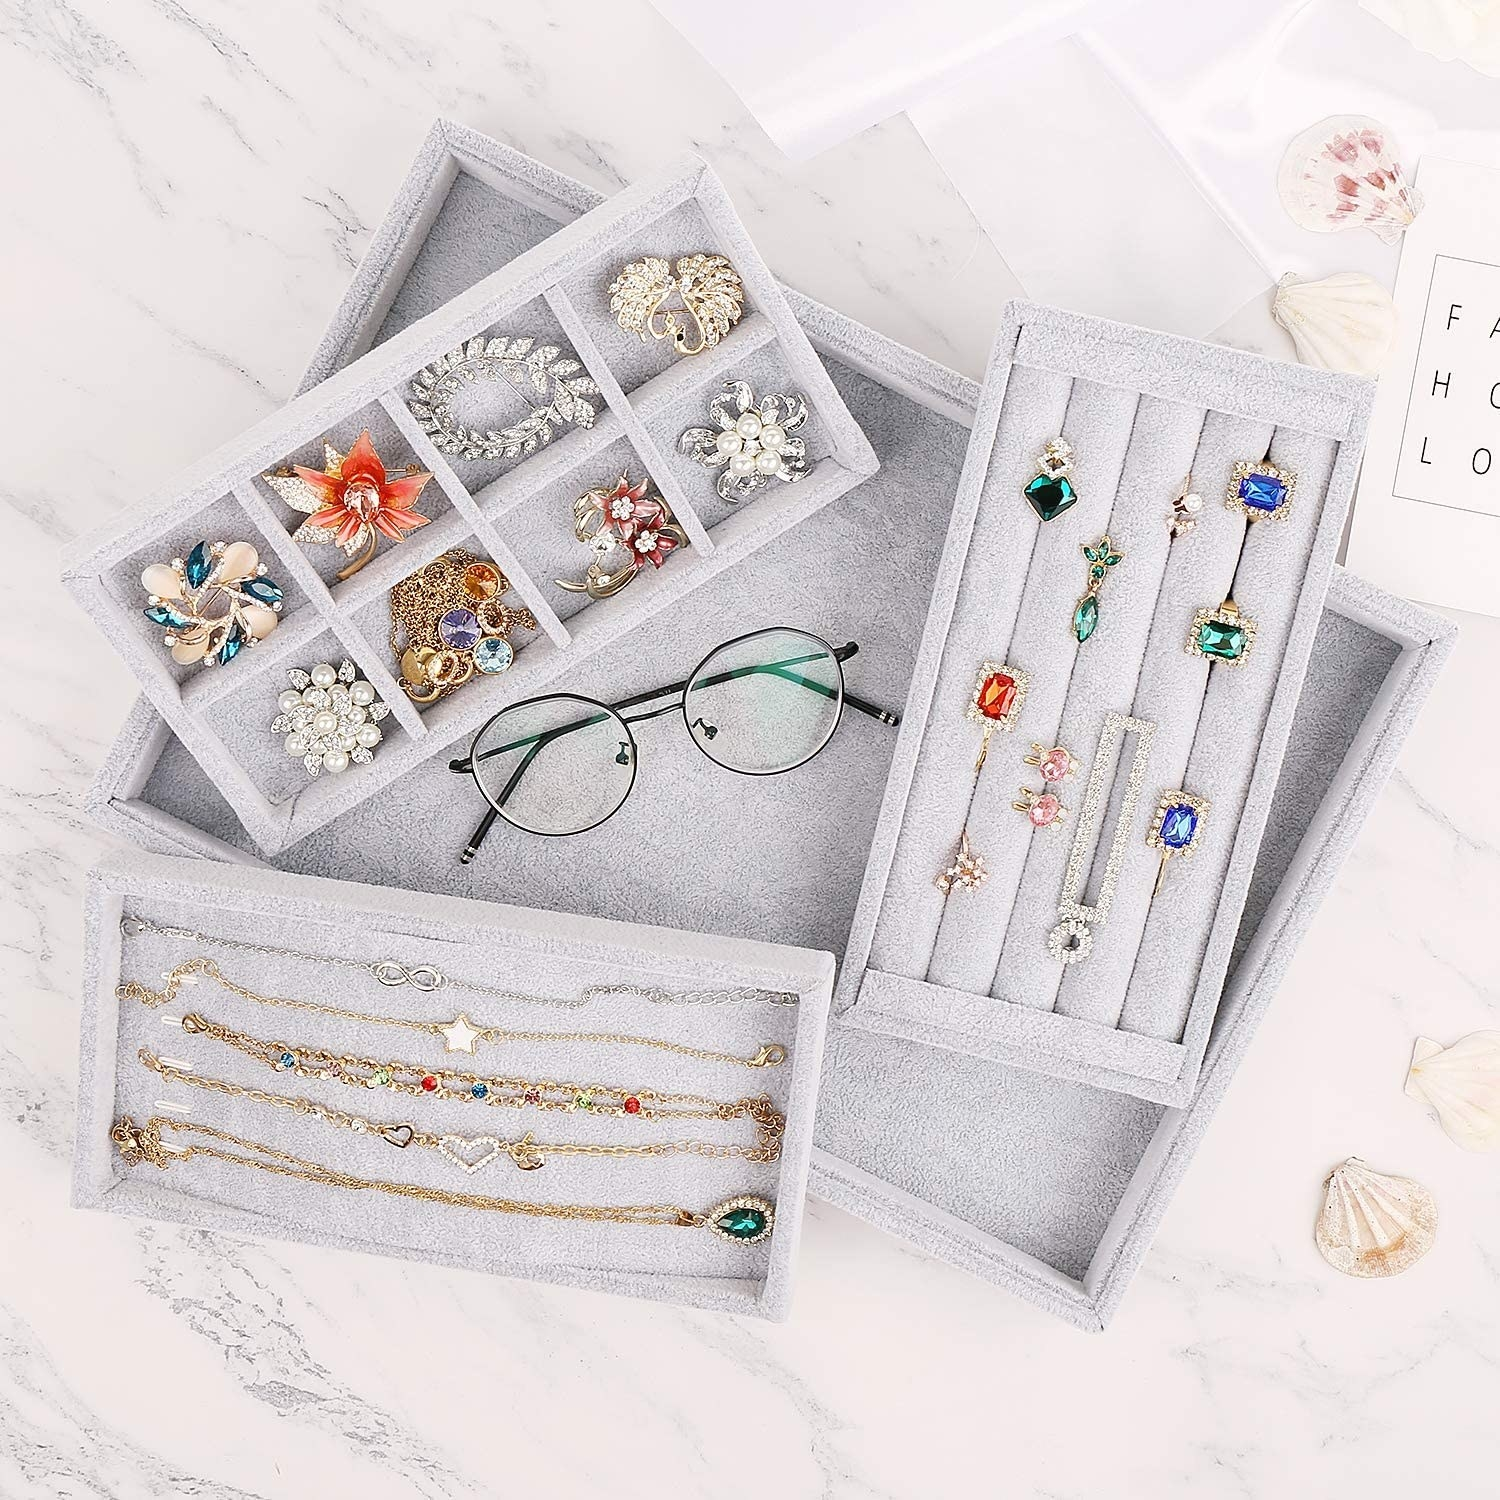 Several pieces of jewellery in the boxes